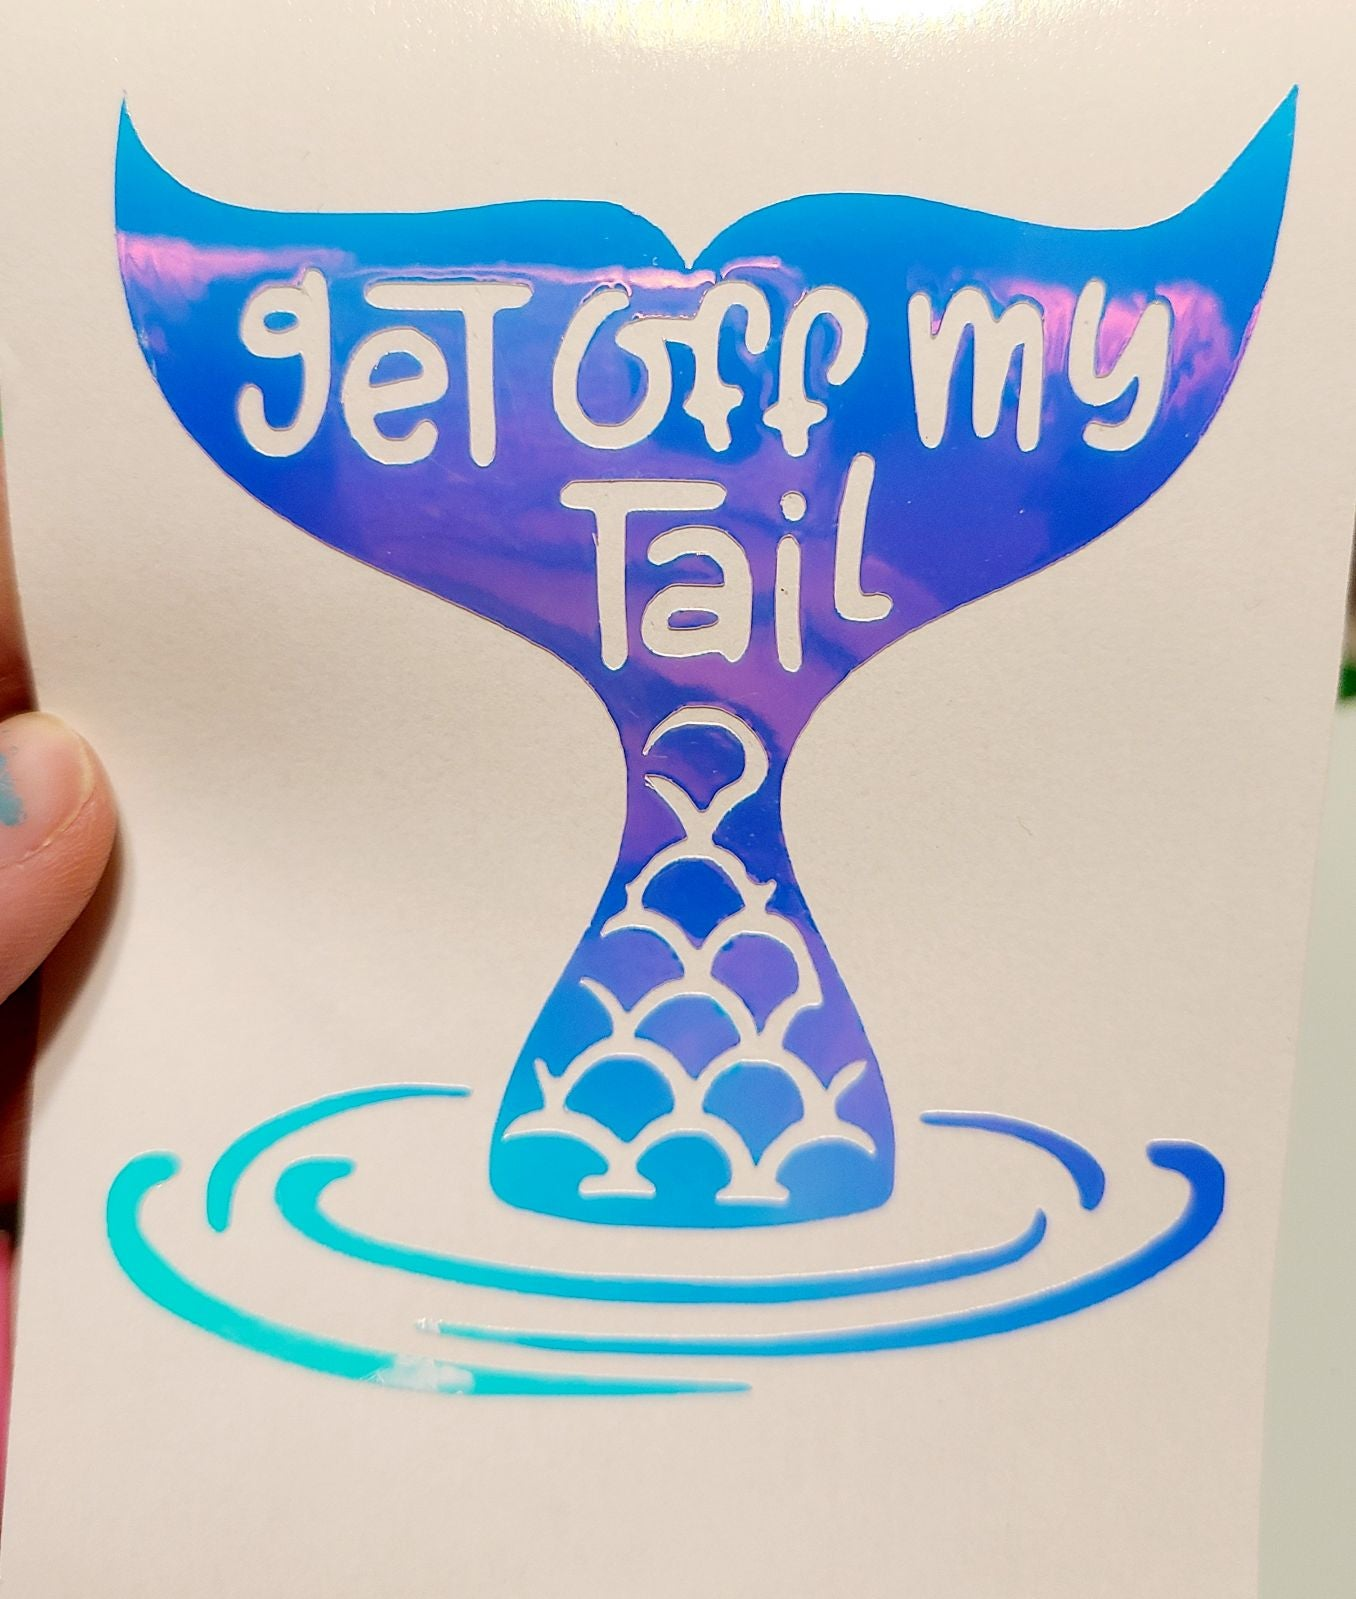 Get off my tail car decal mermaid